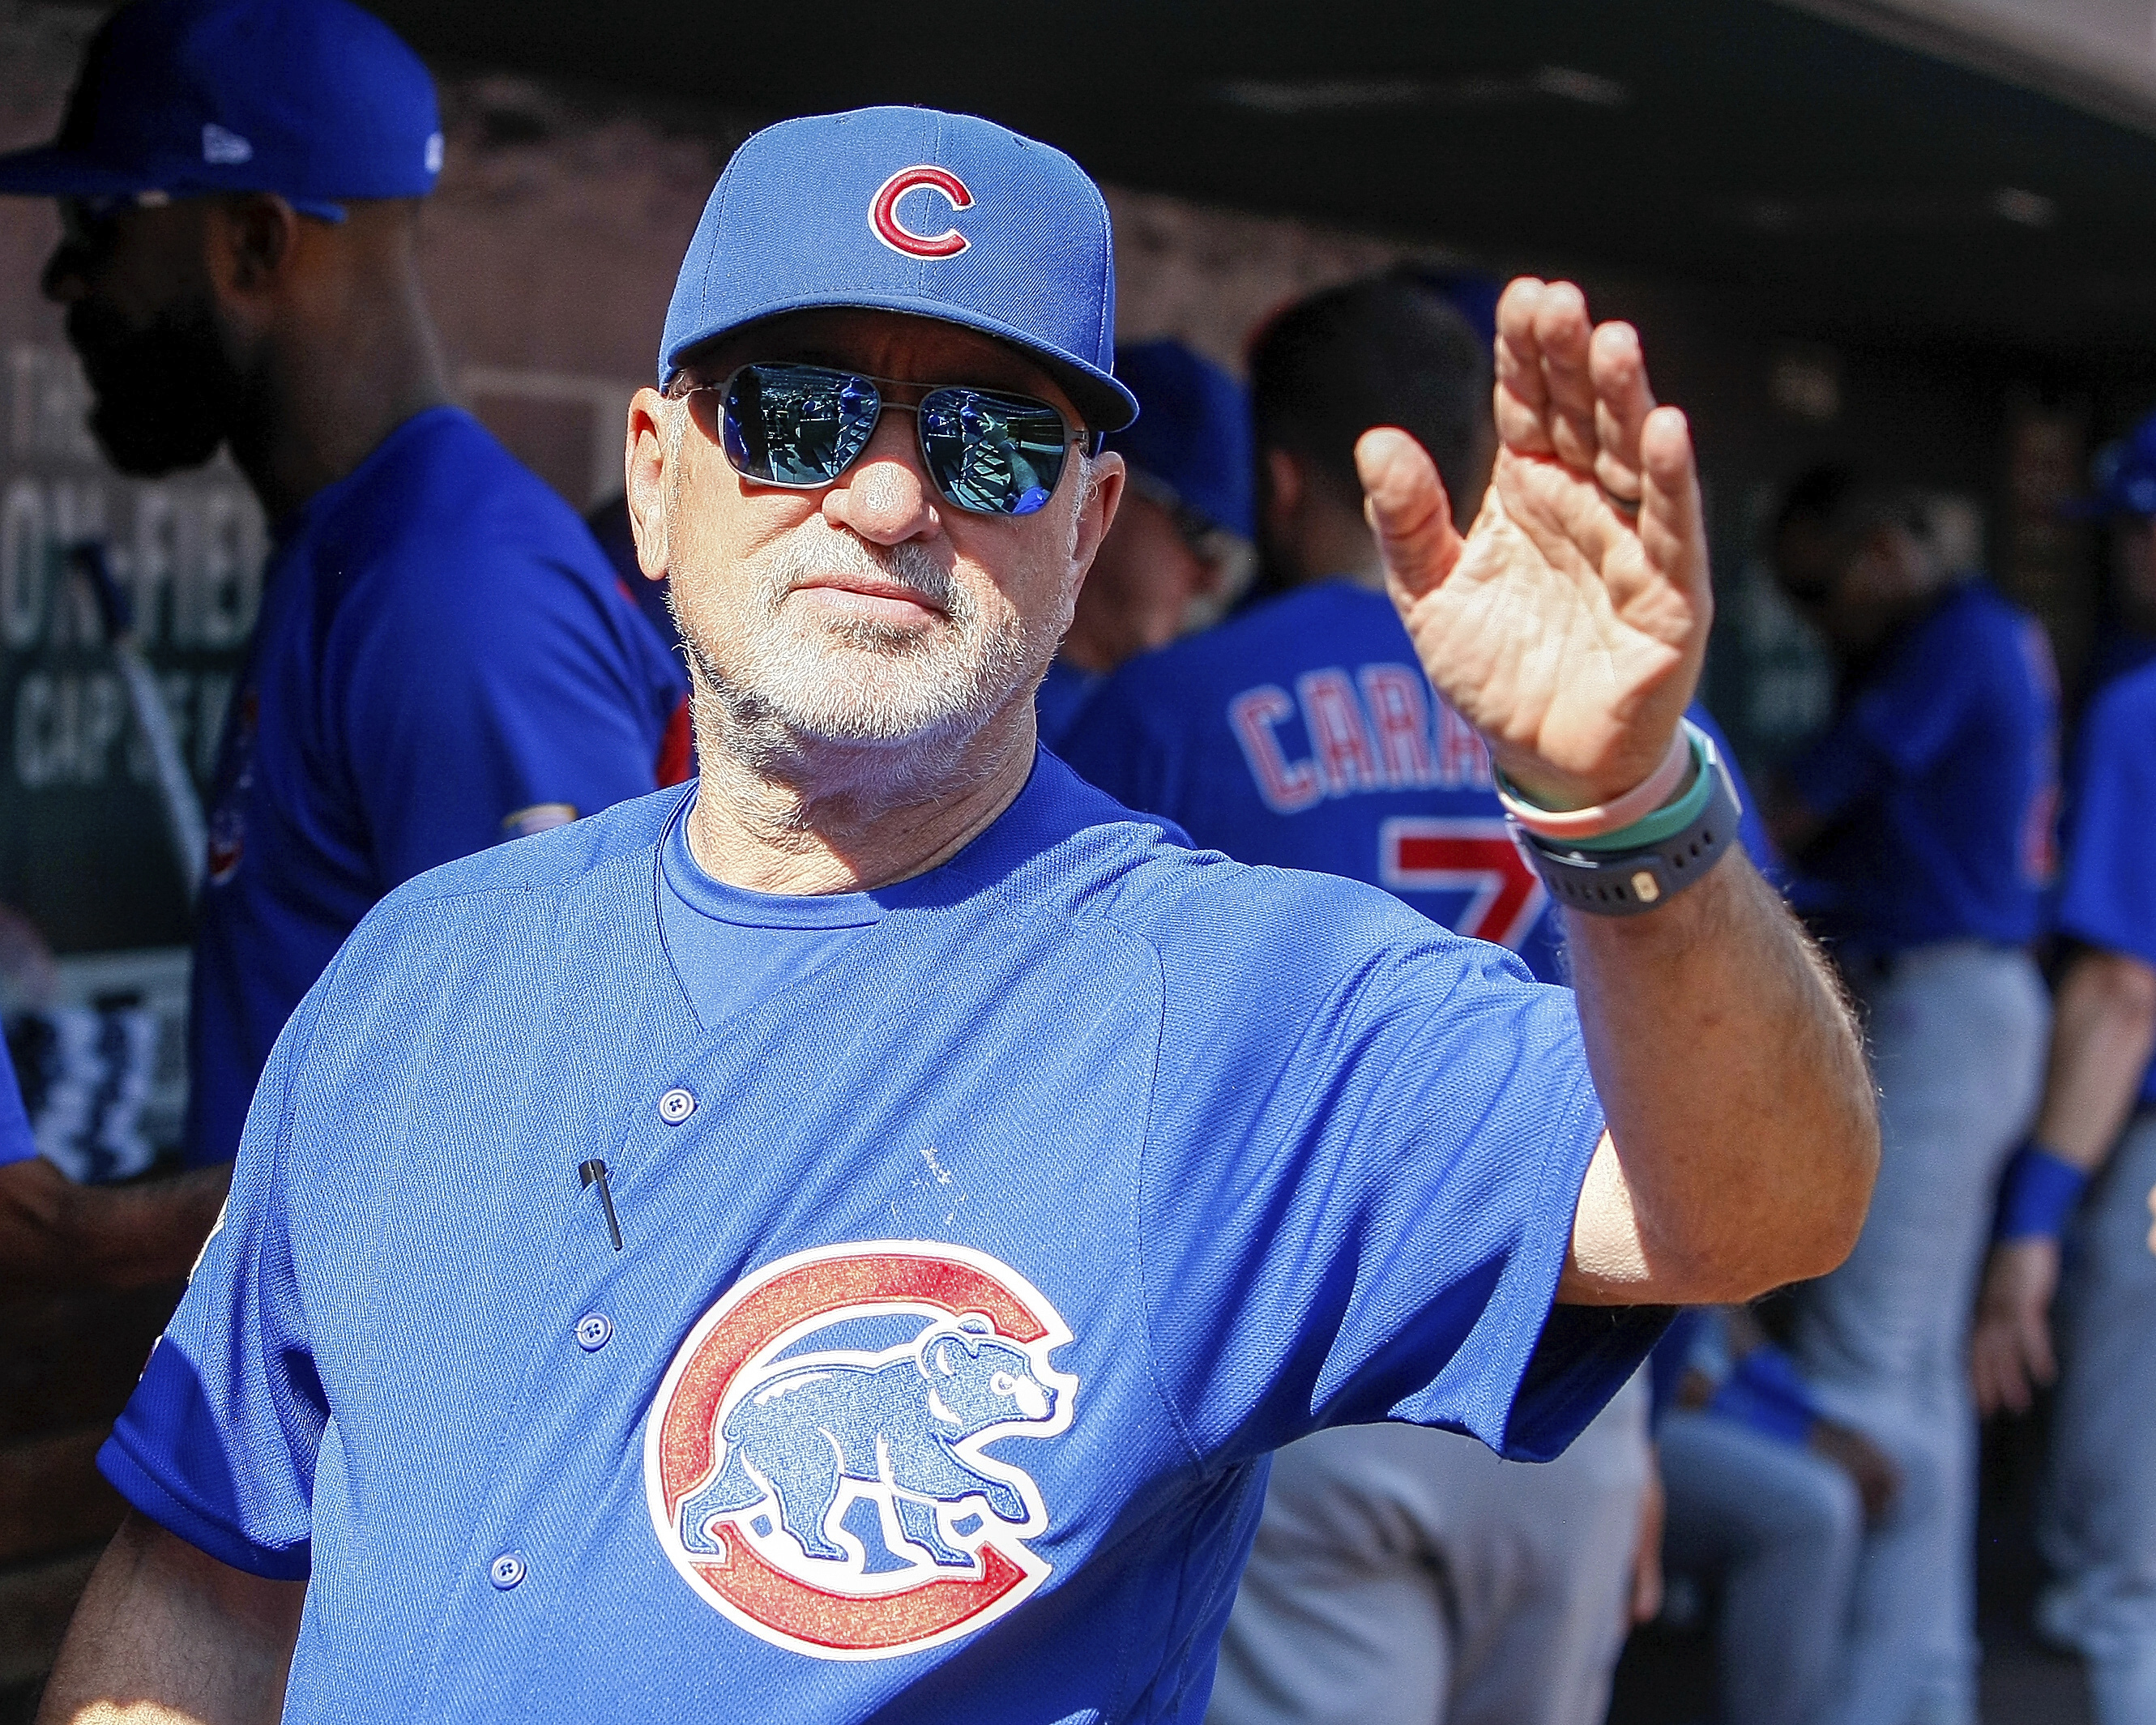 The Angels have reportedly signed former Cubs manager Joe Maddon to a three-year deal.